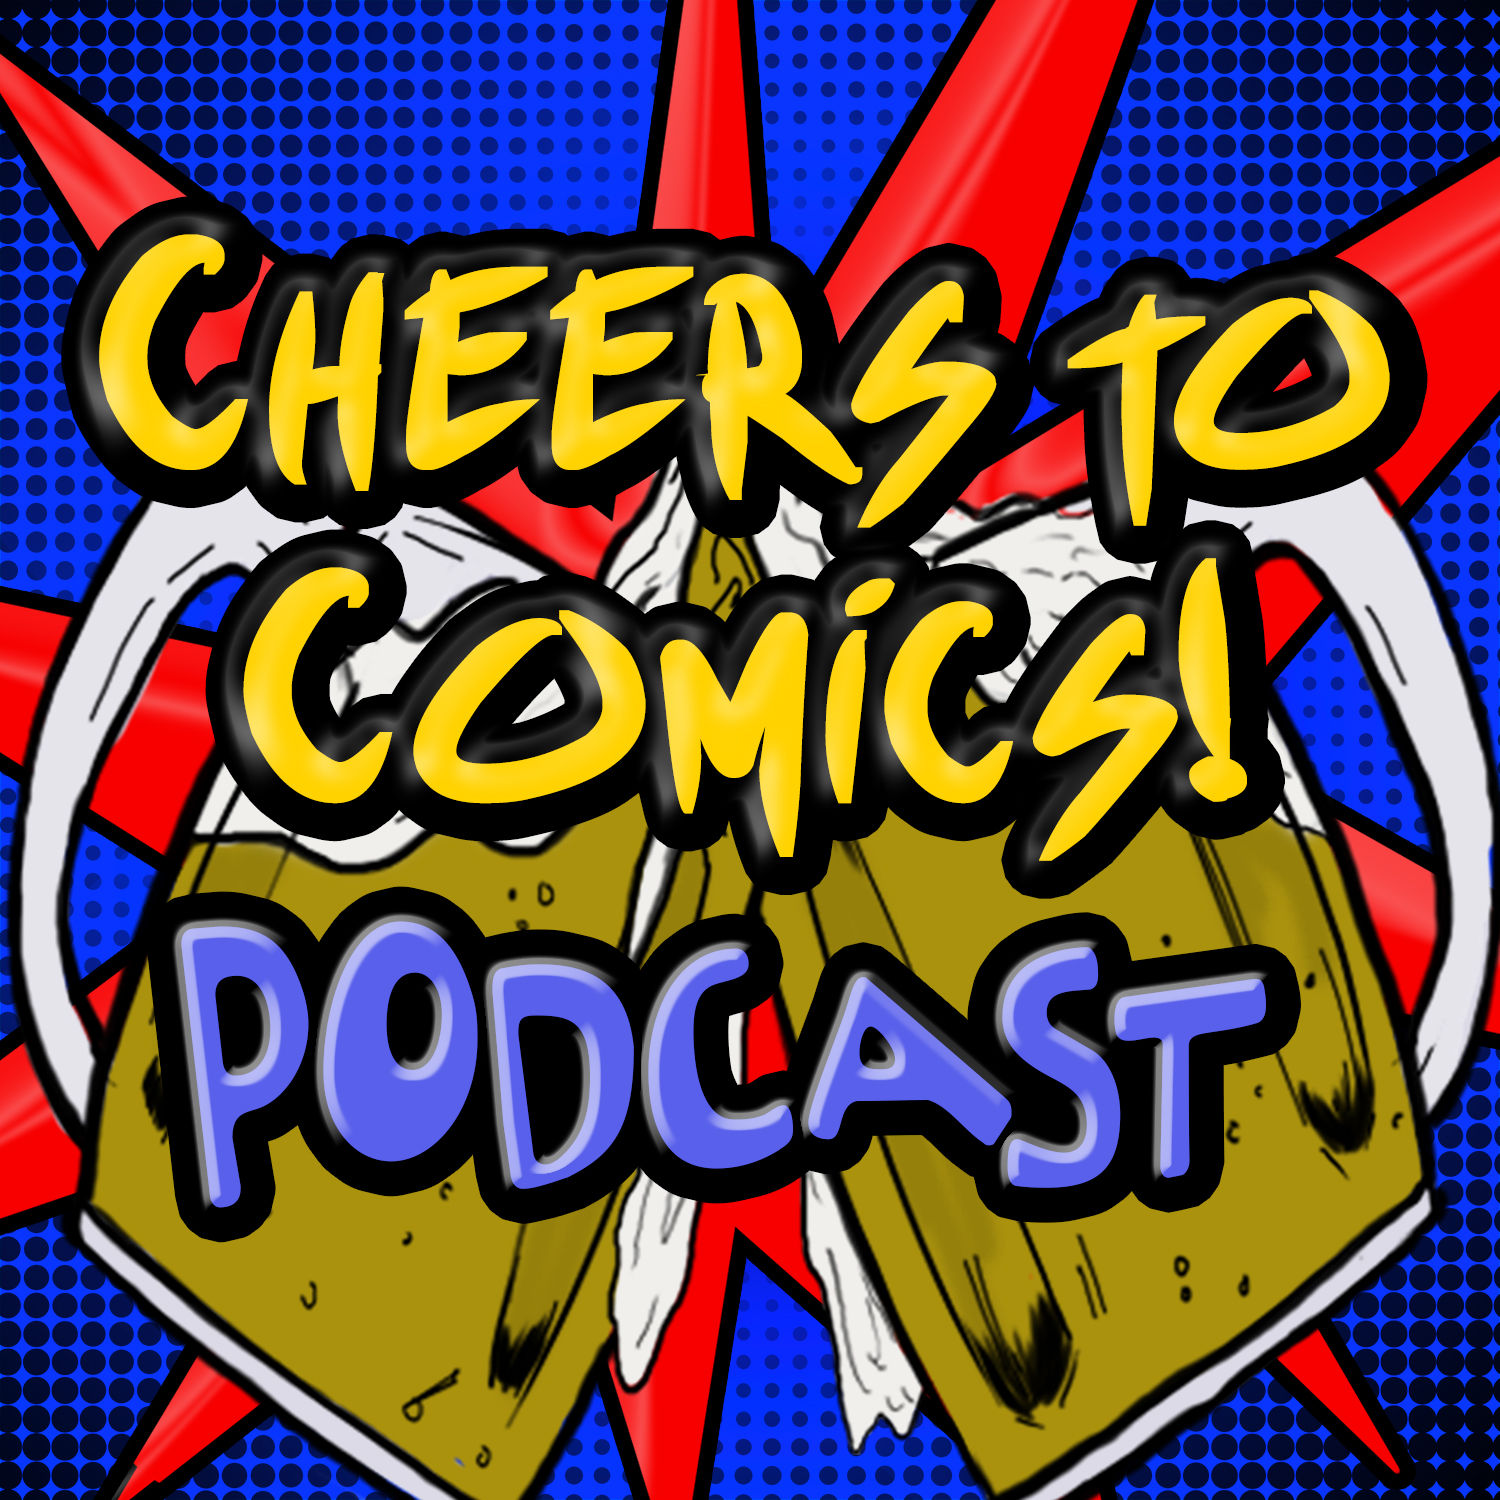 Cheers To Comics! Podcast